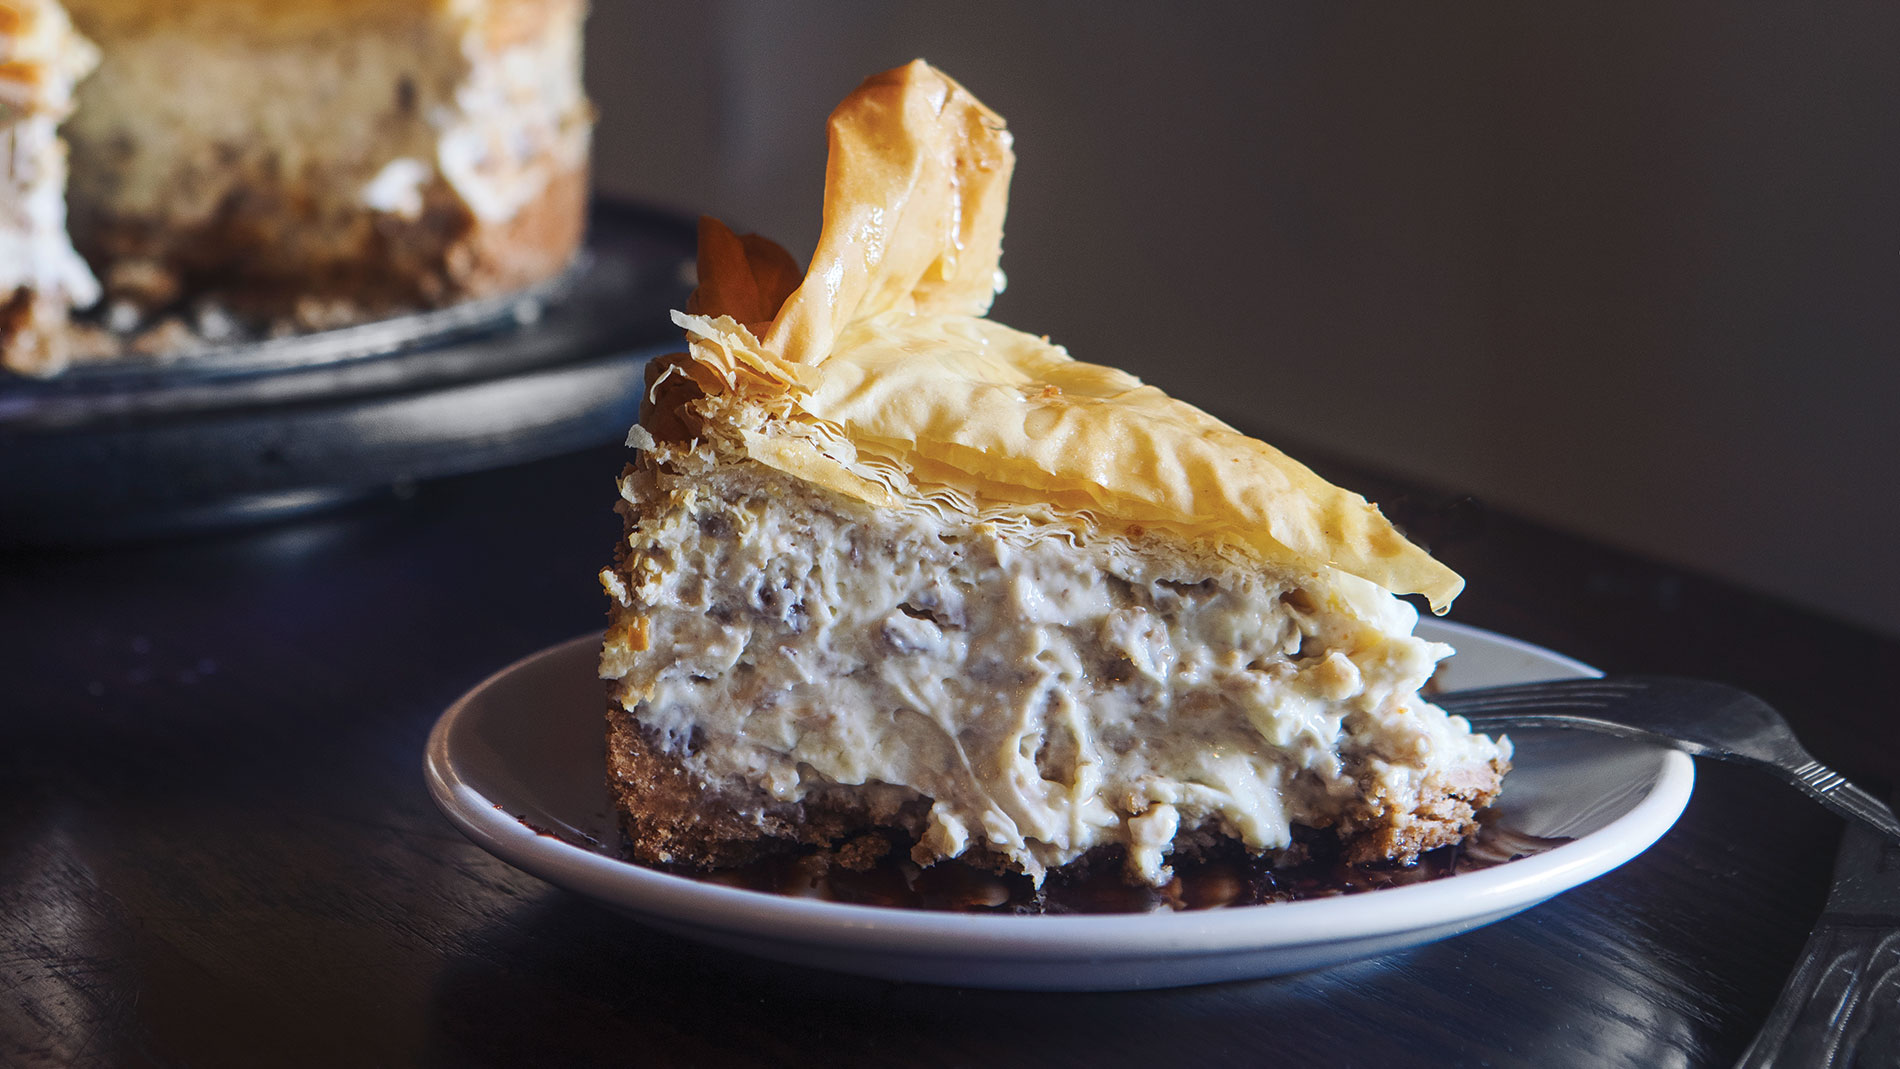 baklava cheesecake from The Greek Kitchen in st. louis